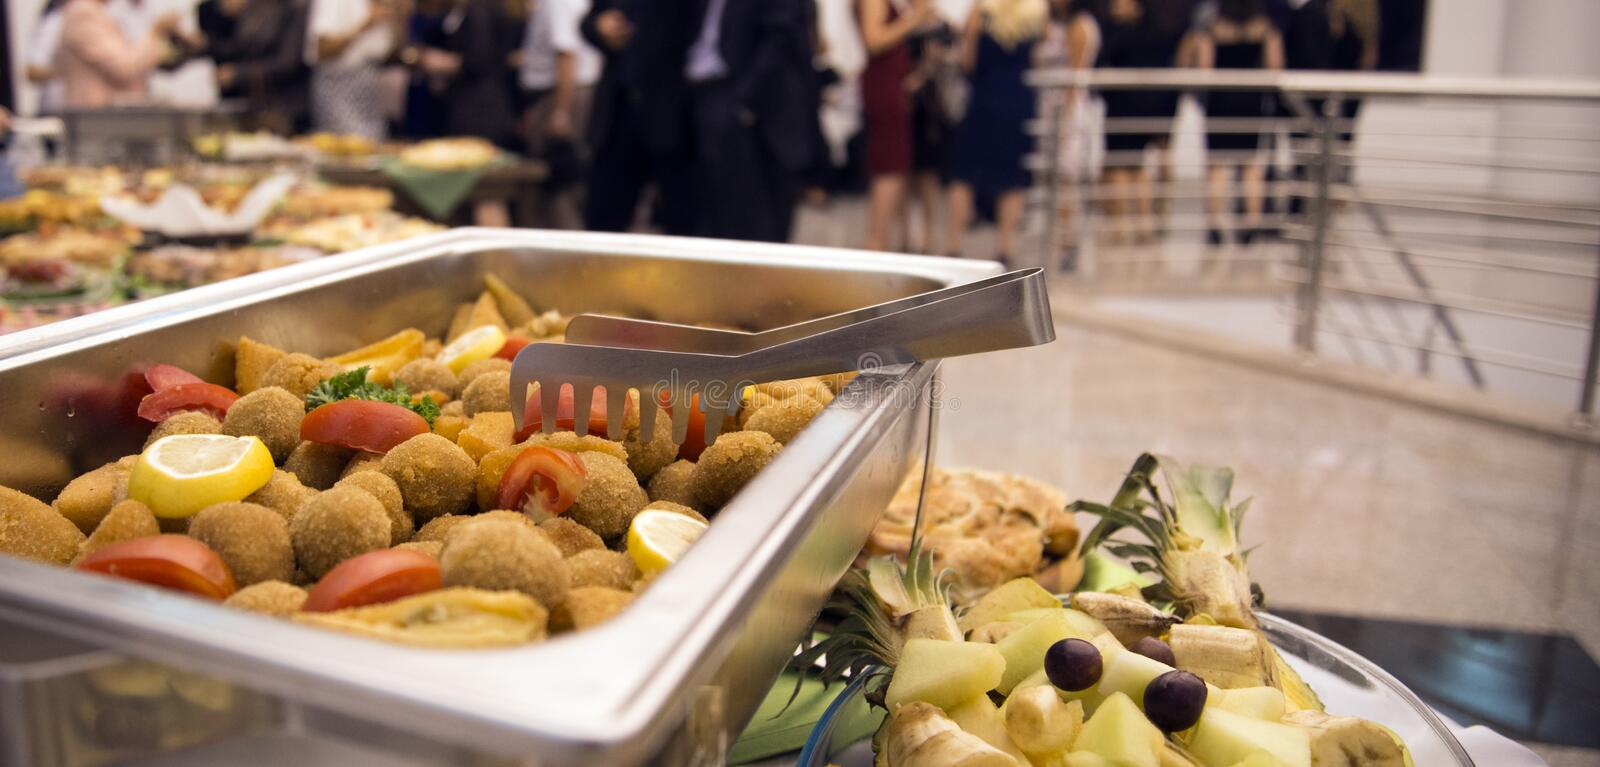 Catering food for weddings or other events. Picture of a well decorated catering food for weddings or other events royalty free stock image